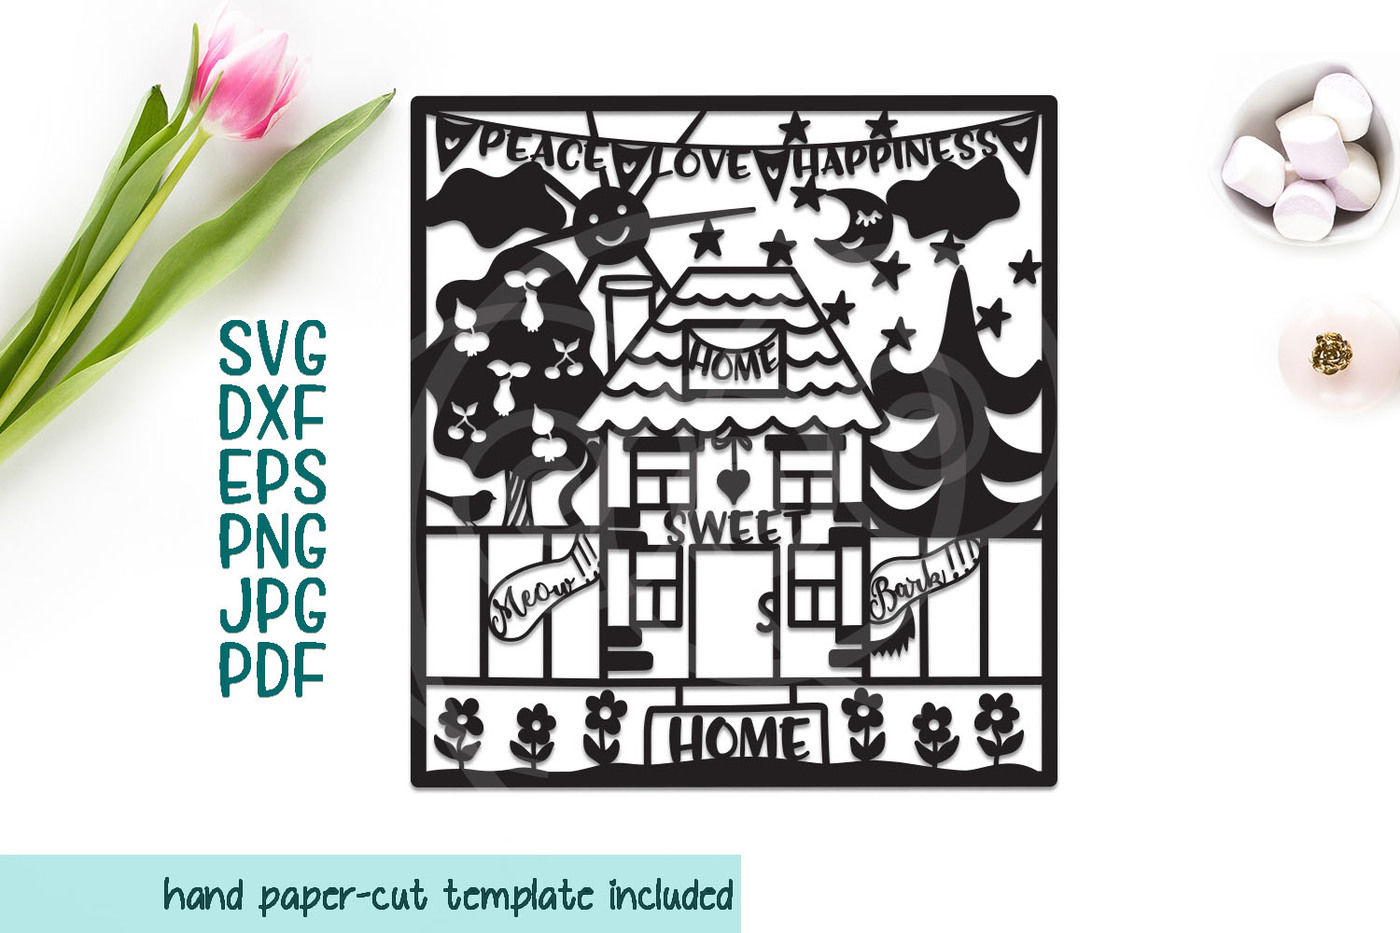 Home Sweet Home Svg Papercutting Template Stencil Laser Cut By